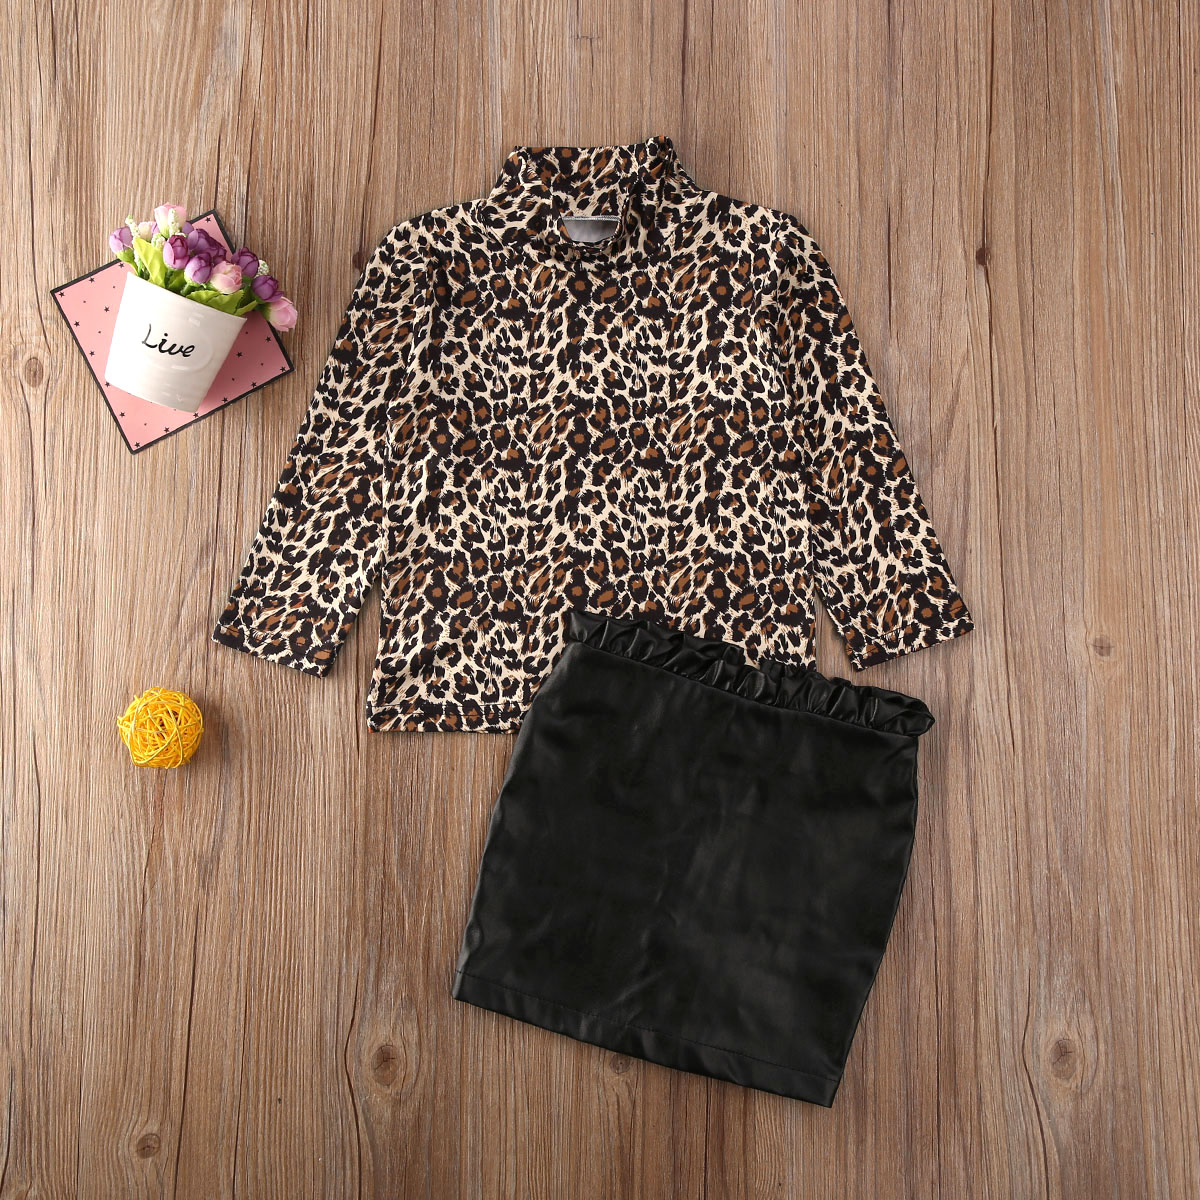 Pudcoco Newest Fashion Toddler Baby Girl Clothes Leopard Print Long Sleeve Cotton Tops Ruffle Leather Skirt 2Pcs Outfits Clothes